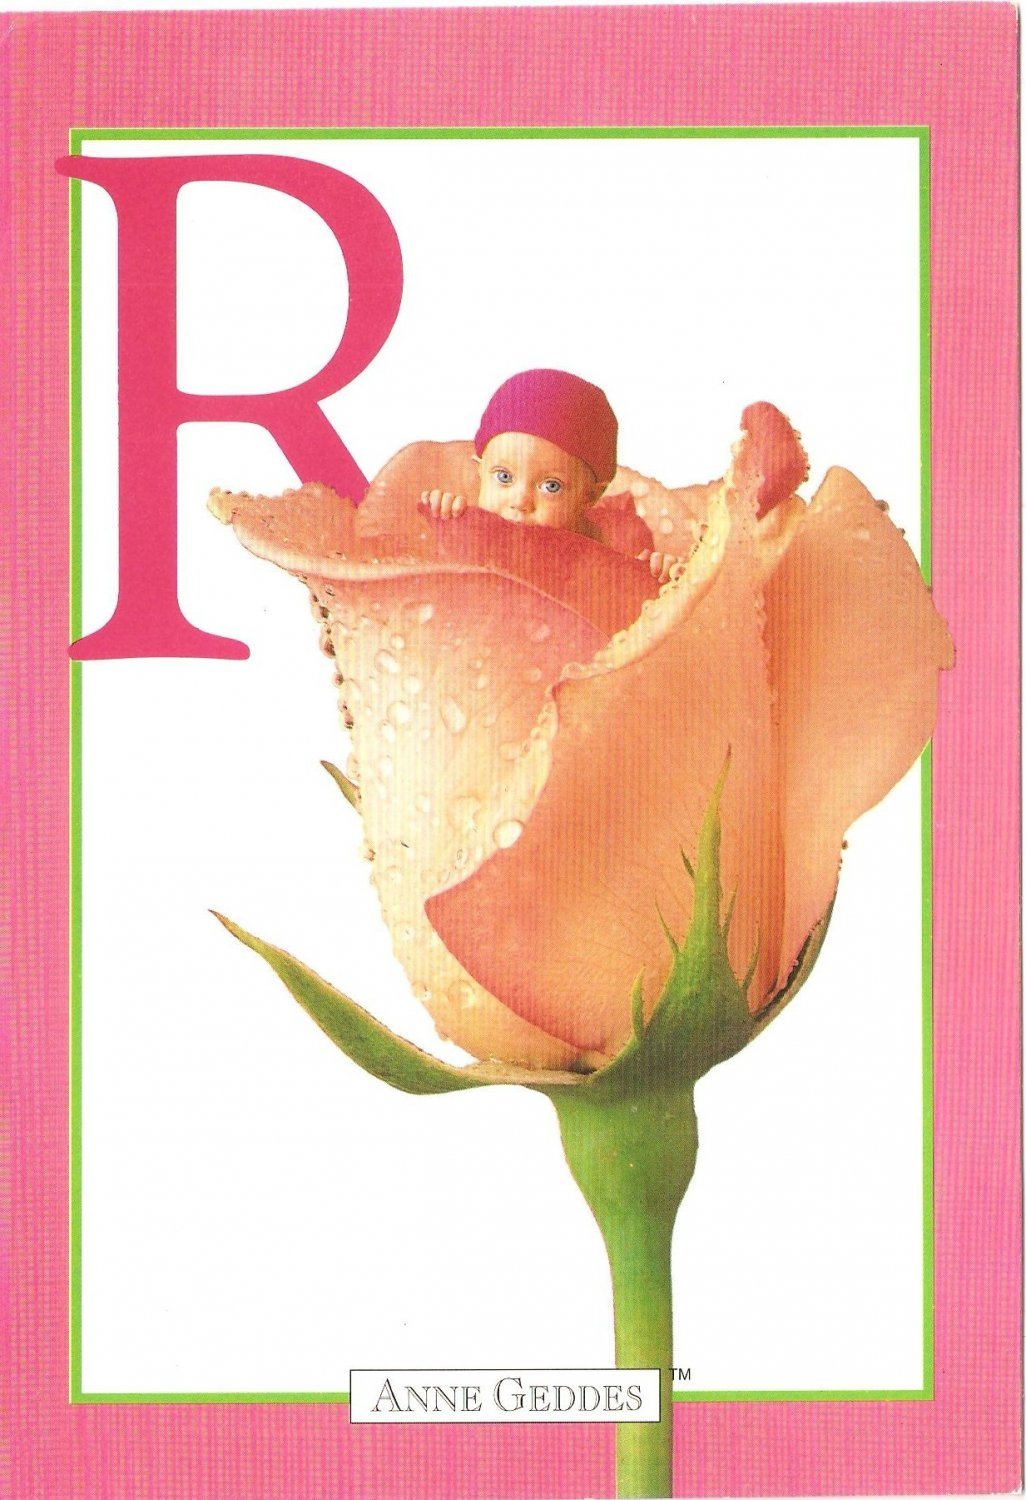 Anne Geddes Postcard 1995 605-071 R is for Rose Baby 4x6